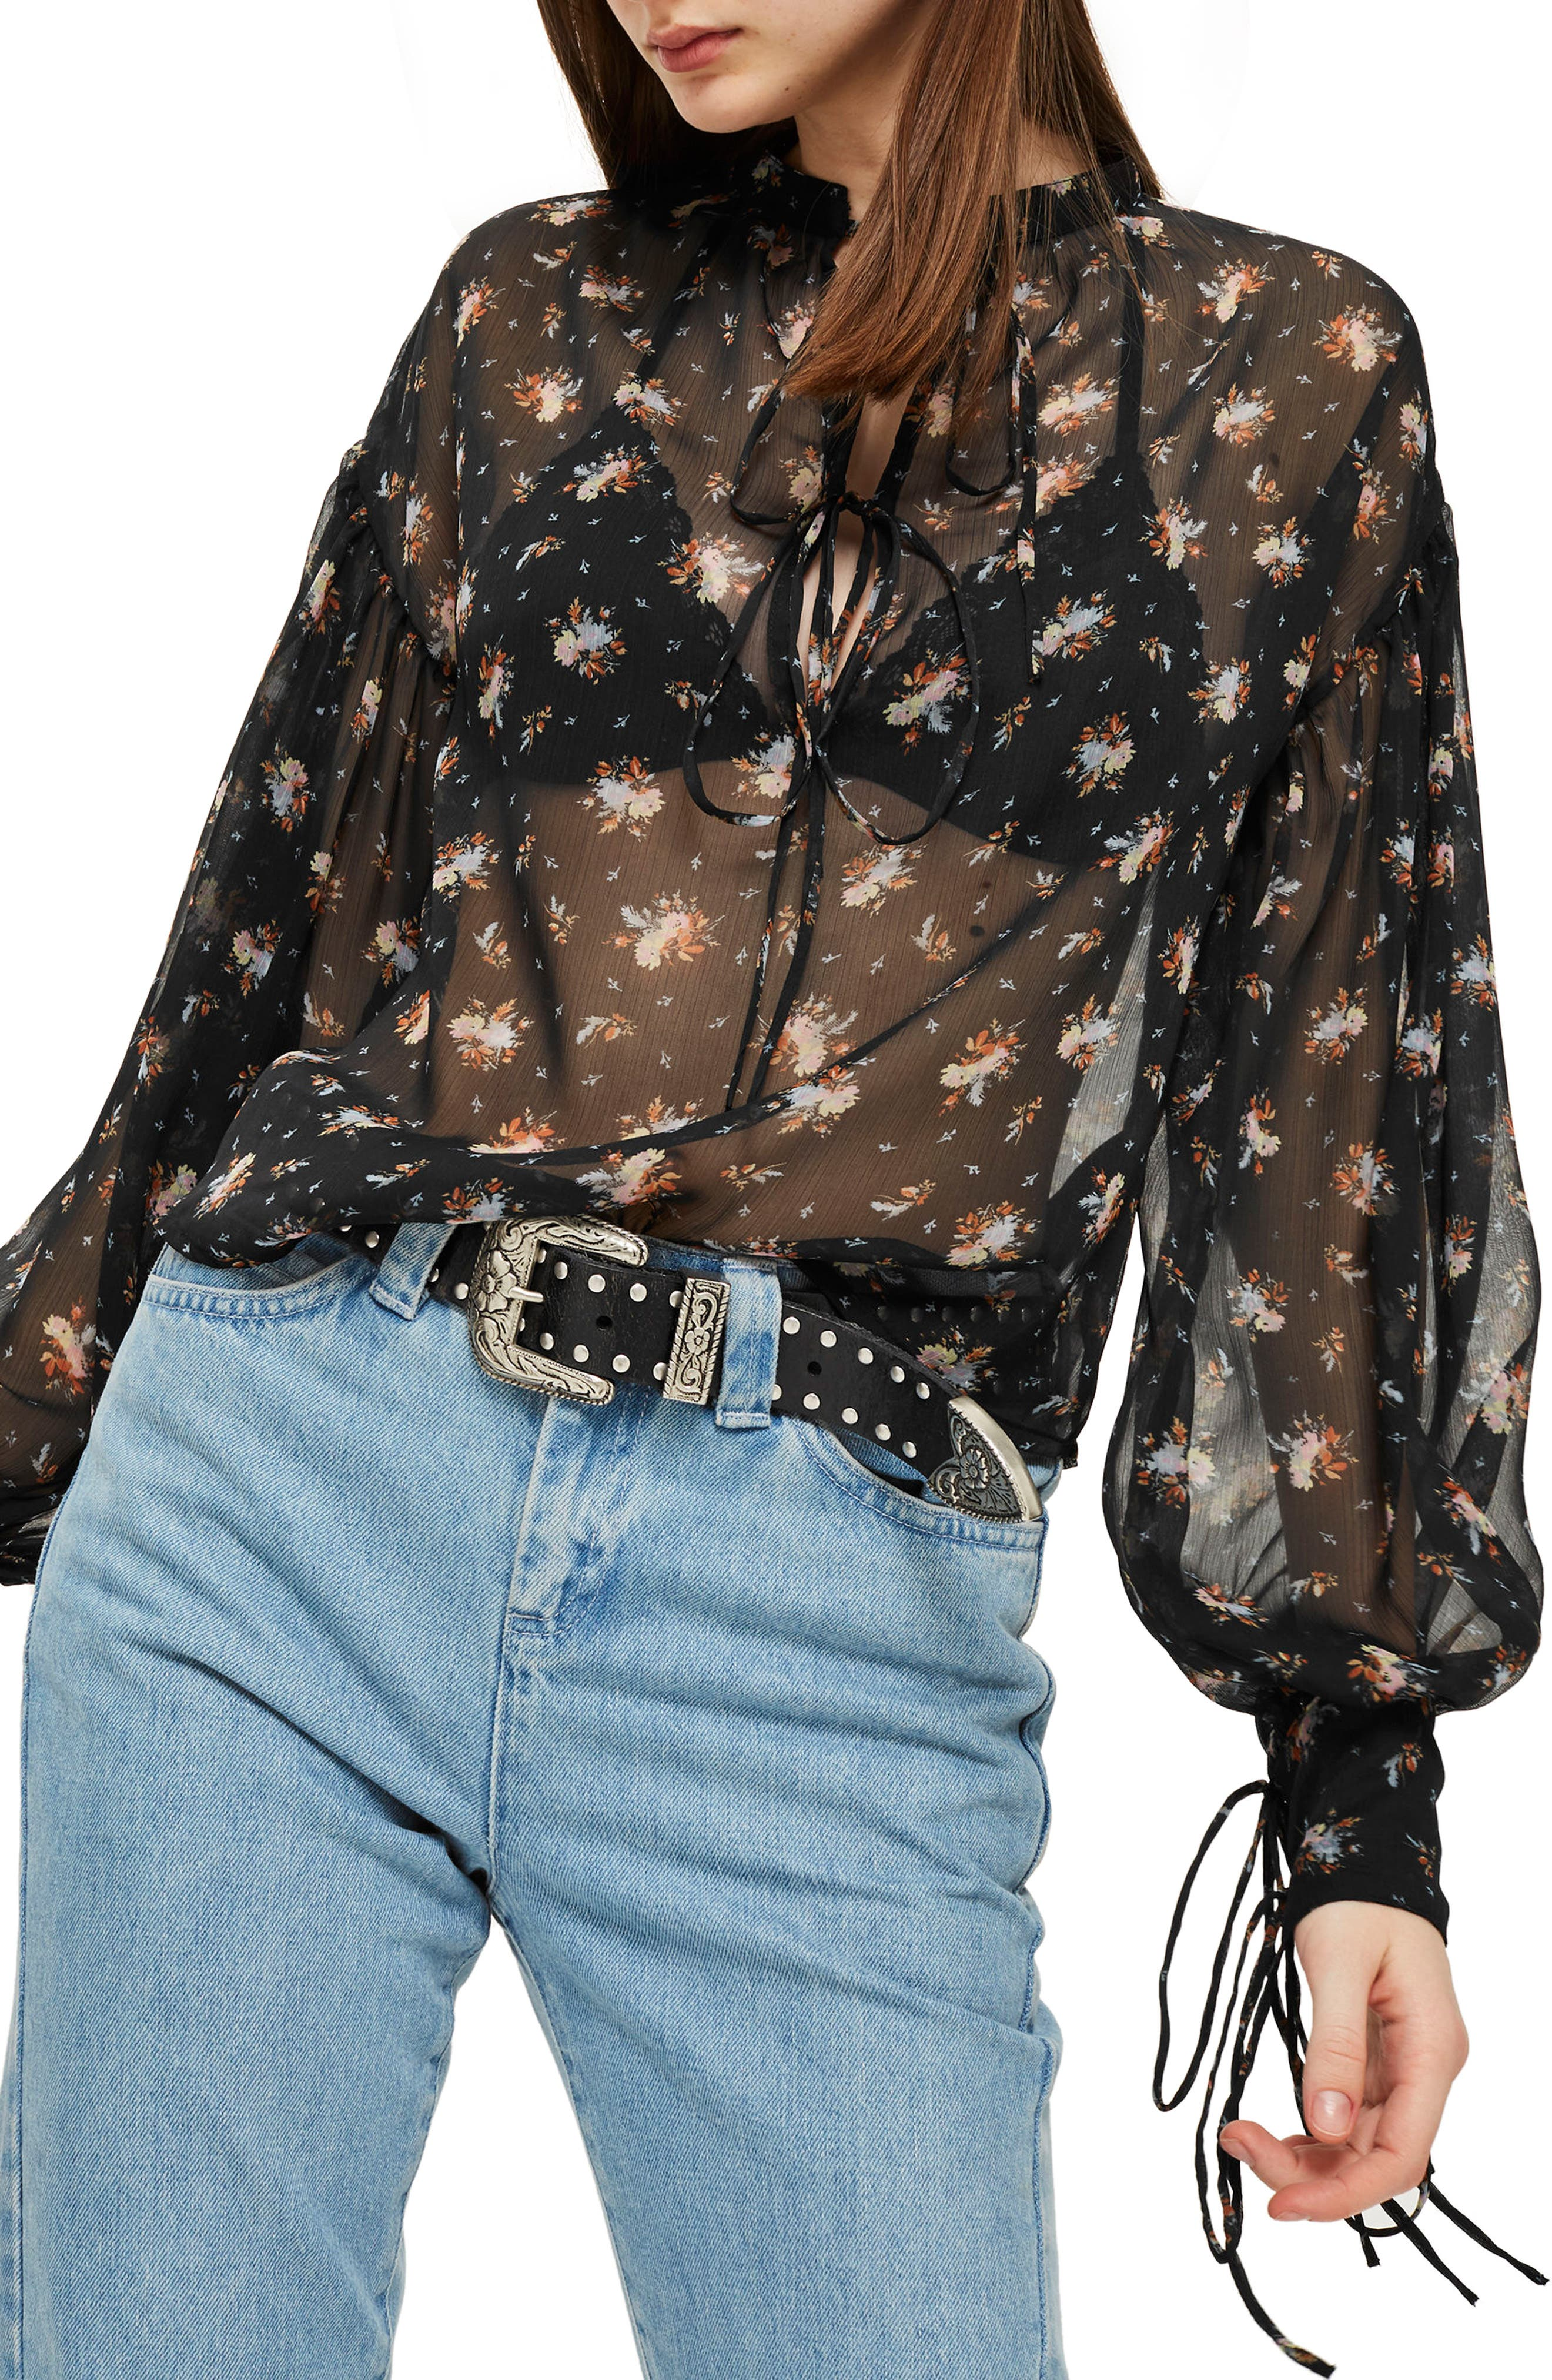 Gypsy Floral Sheer Blouse,                         Main,                         color, Black Multi